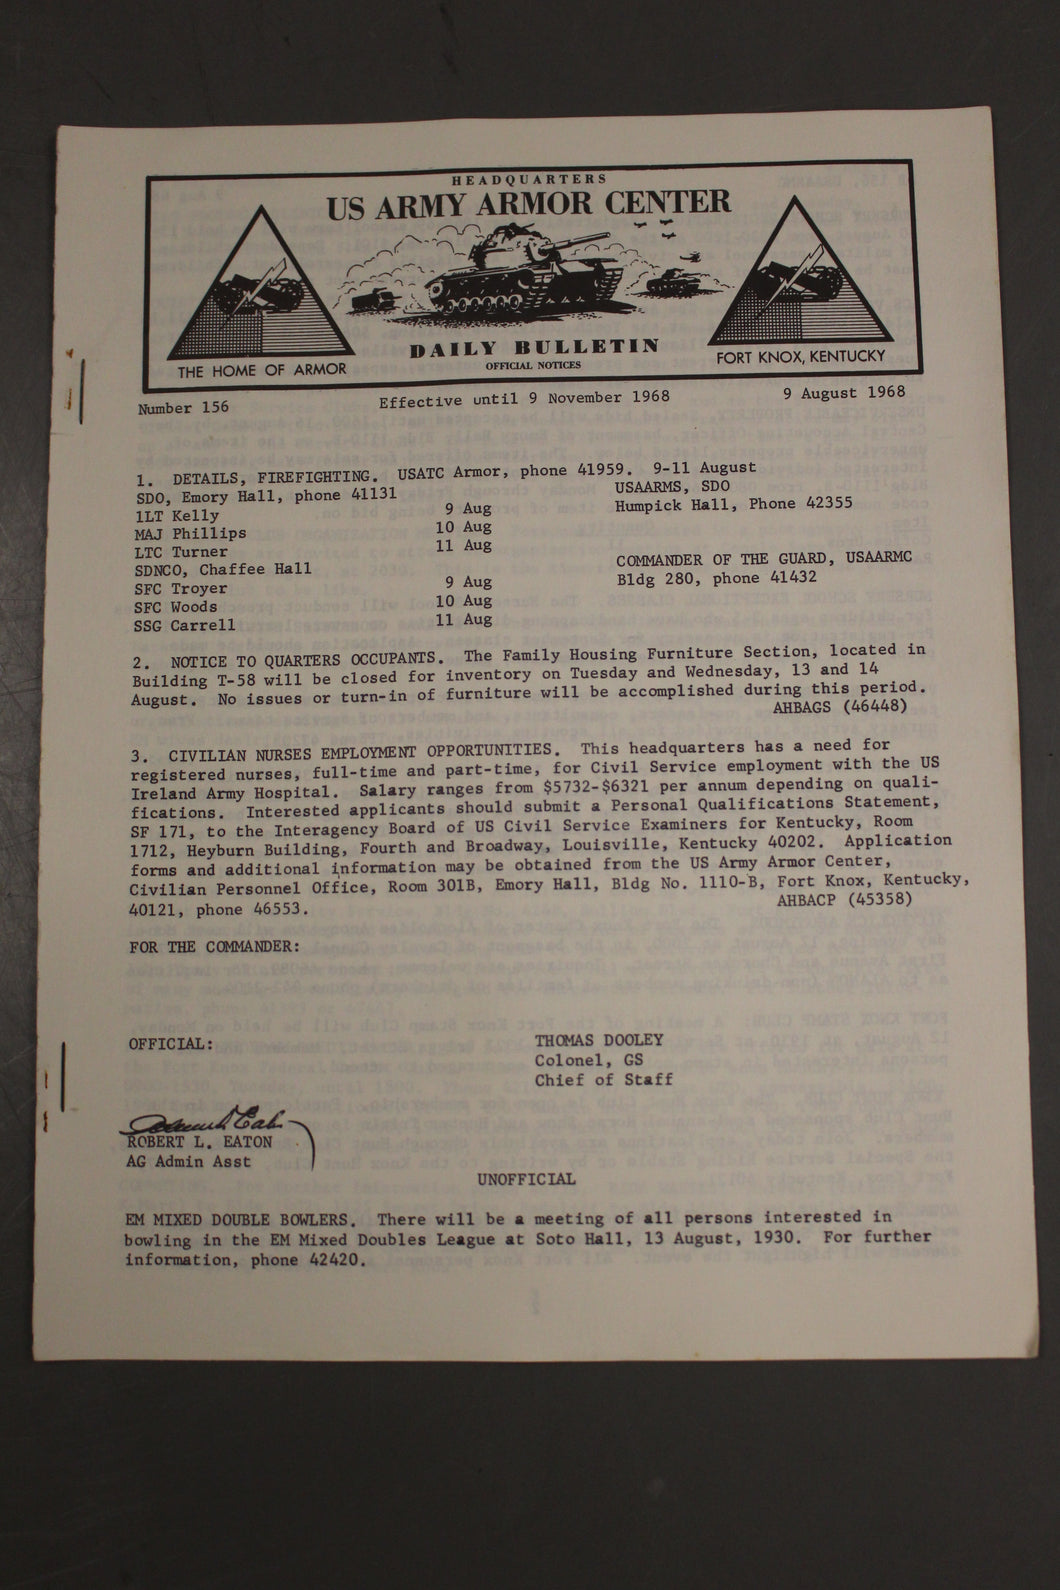 US Army Armor Center Daily Bulletin Official Notices, No 156, August 9, 1968